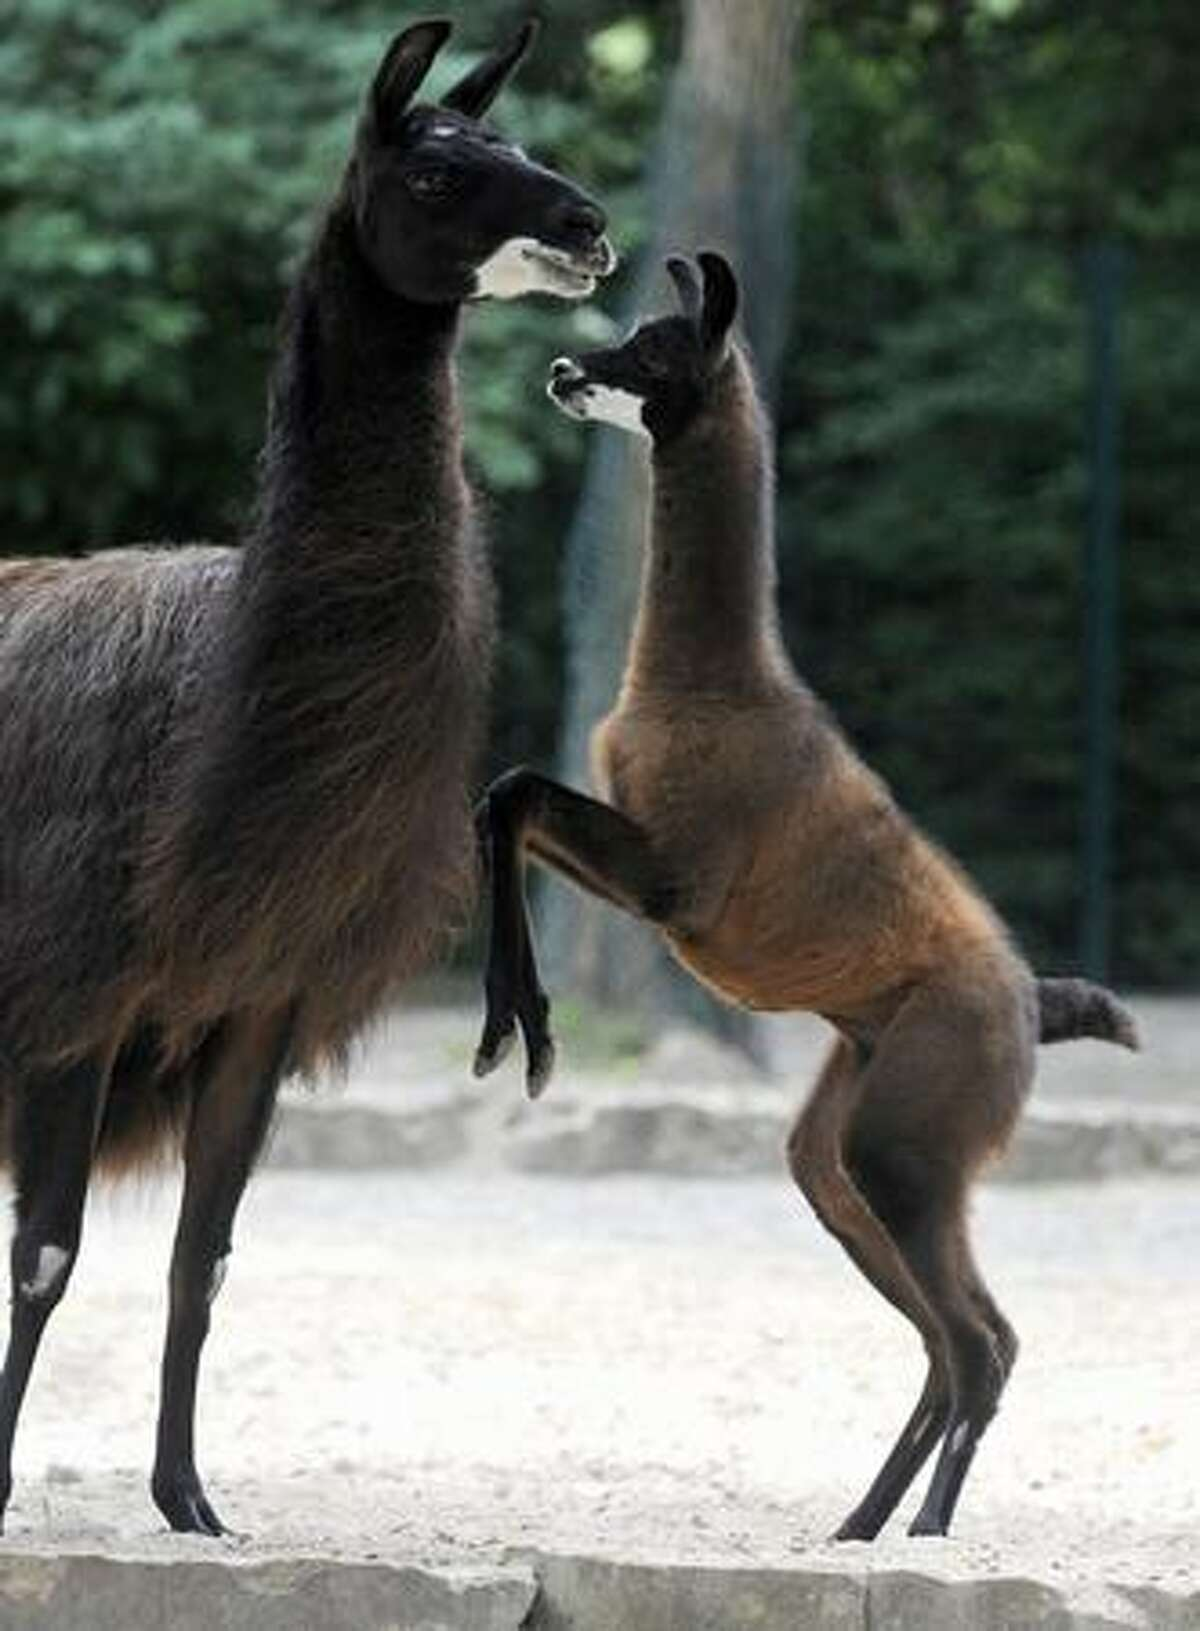 Llama baby Moren plays with its mother Sarotti at the zoo in Hannover, northern Germany. The male llama was born on June 21, 2009.